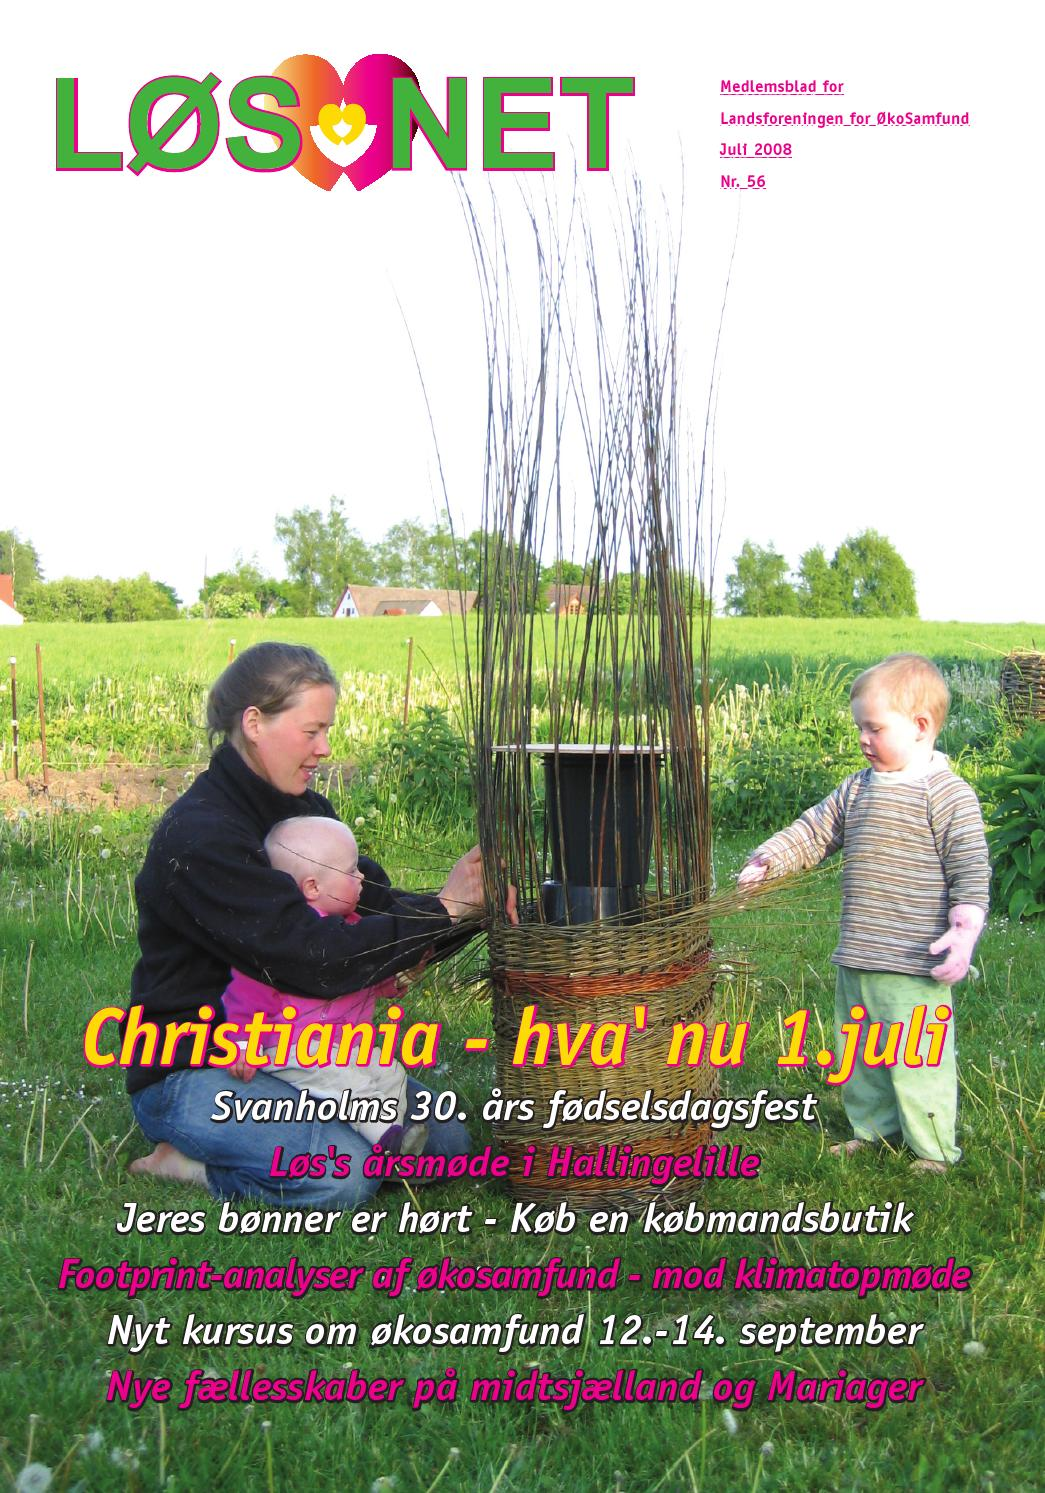 Løsnet 56 2008 07 by landsforeningen for Økosamfund   issuu